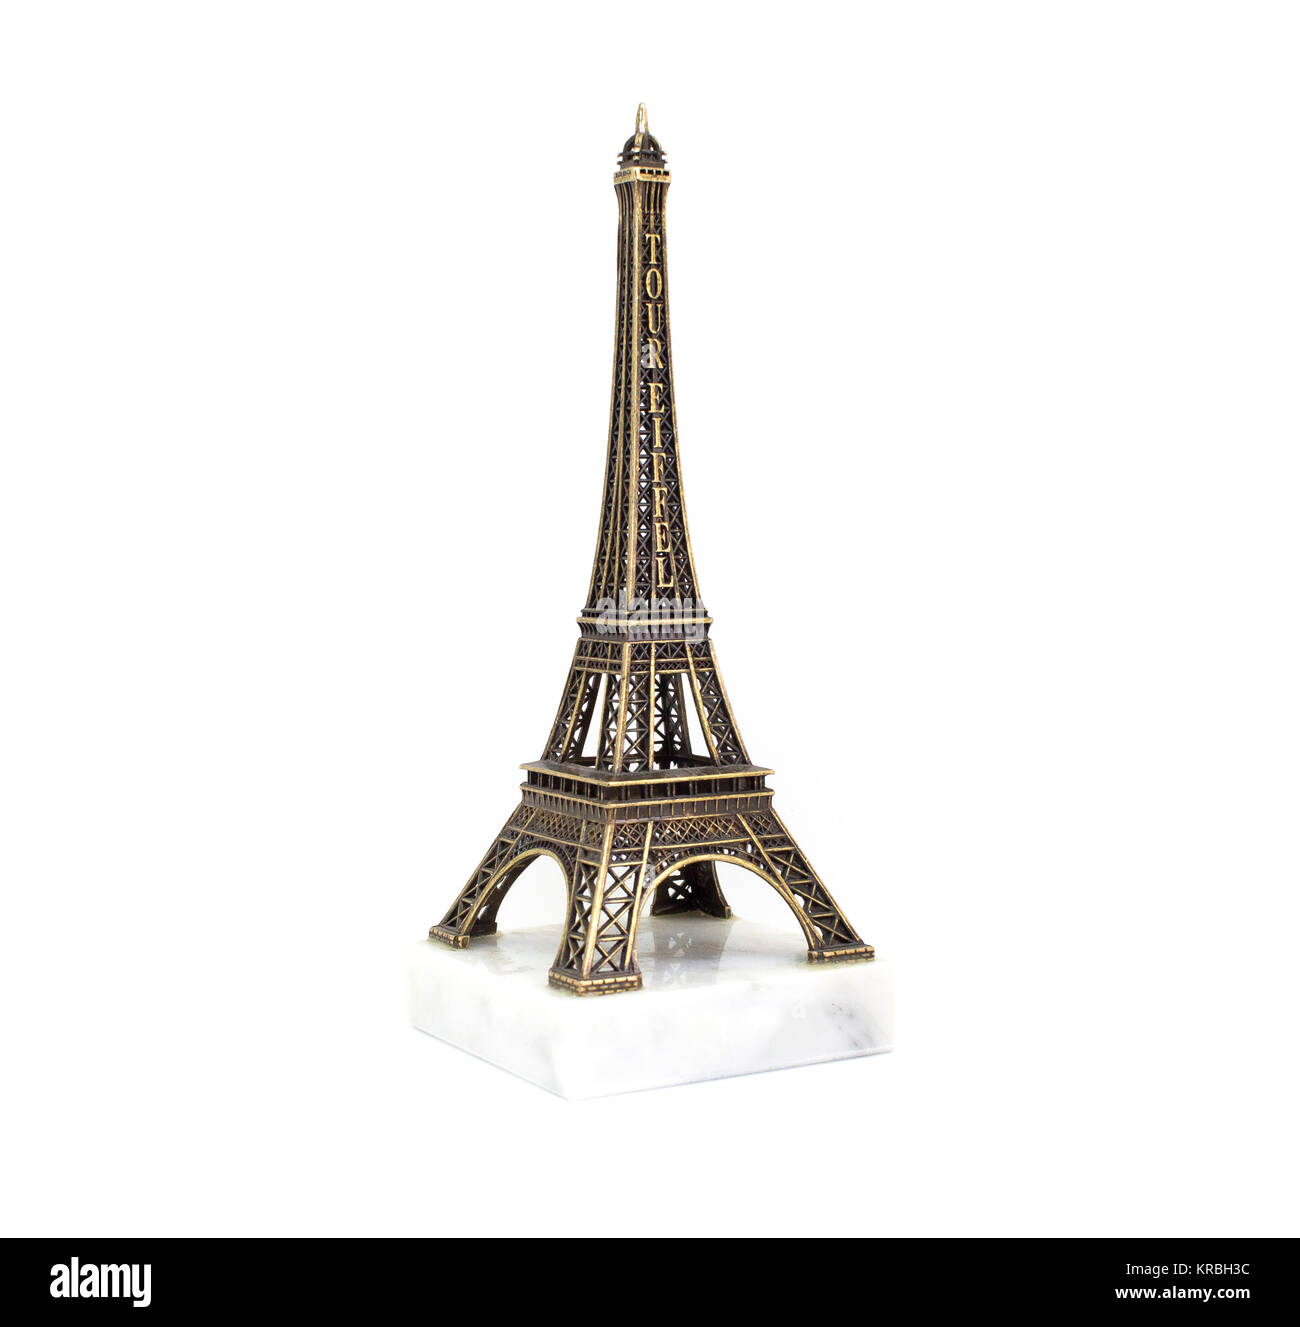 Paris Eiffel tower souvenir on the stand isolated on white background - Stock Image